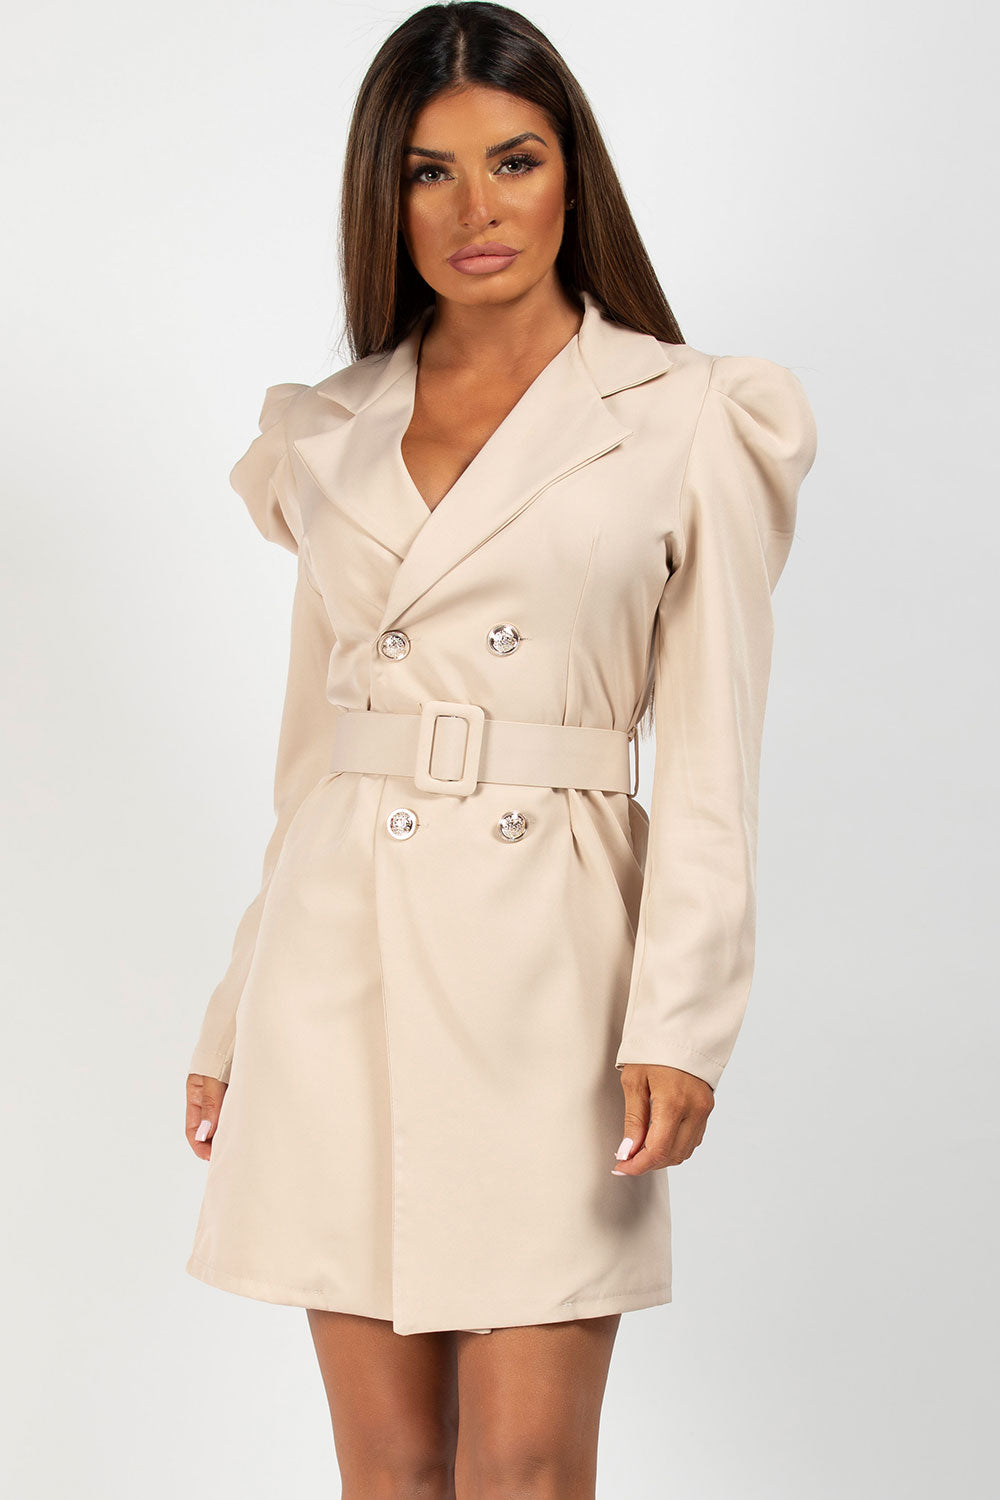 belted blazer dress styledup fashion